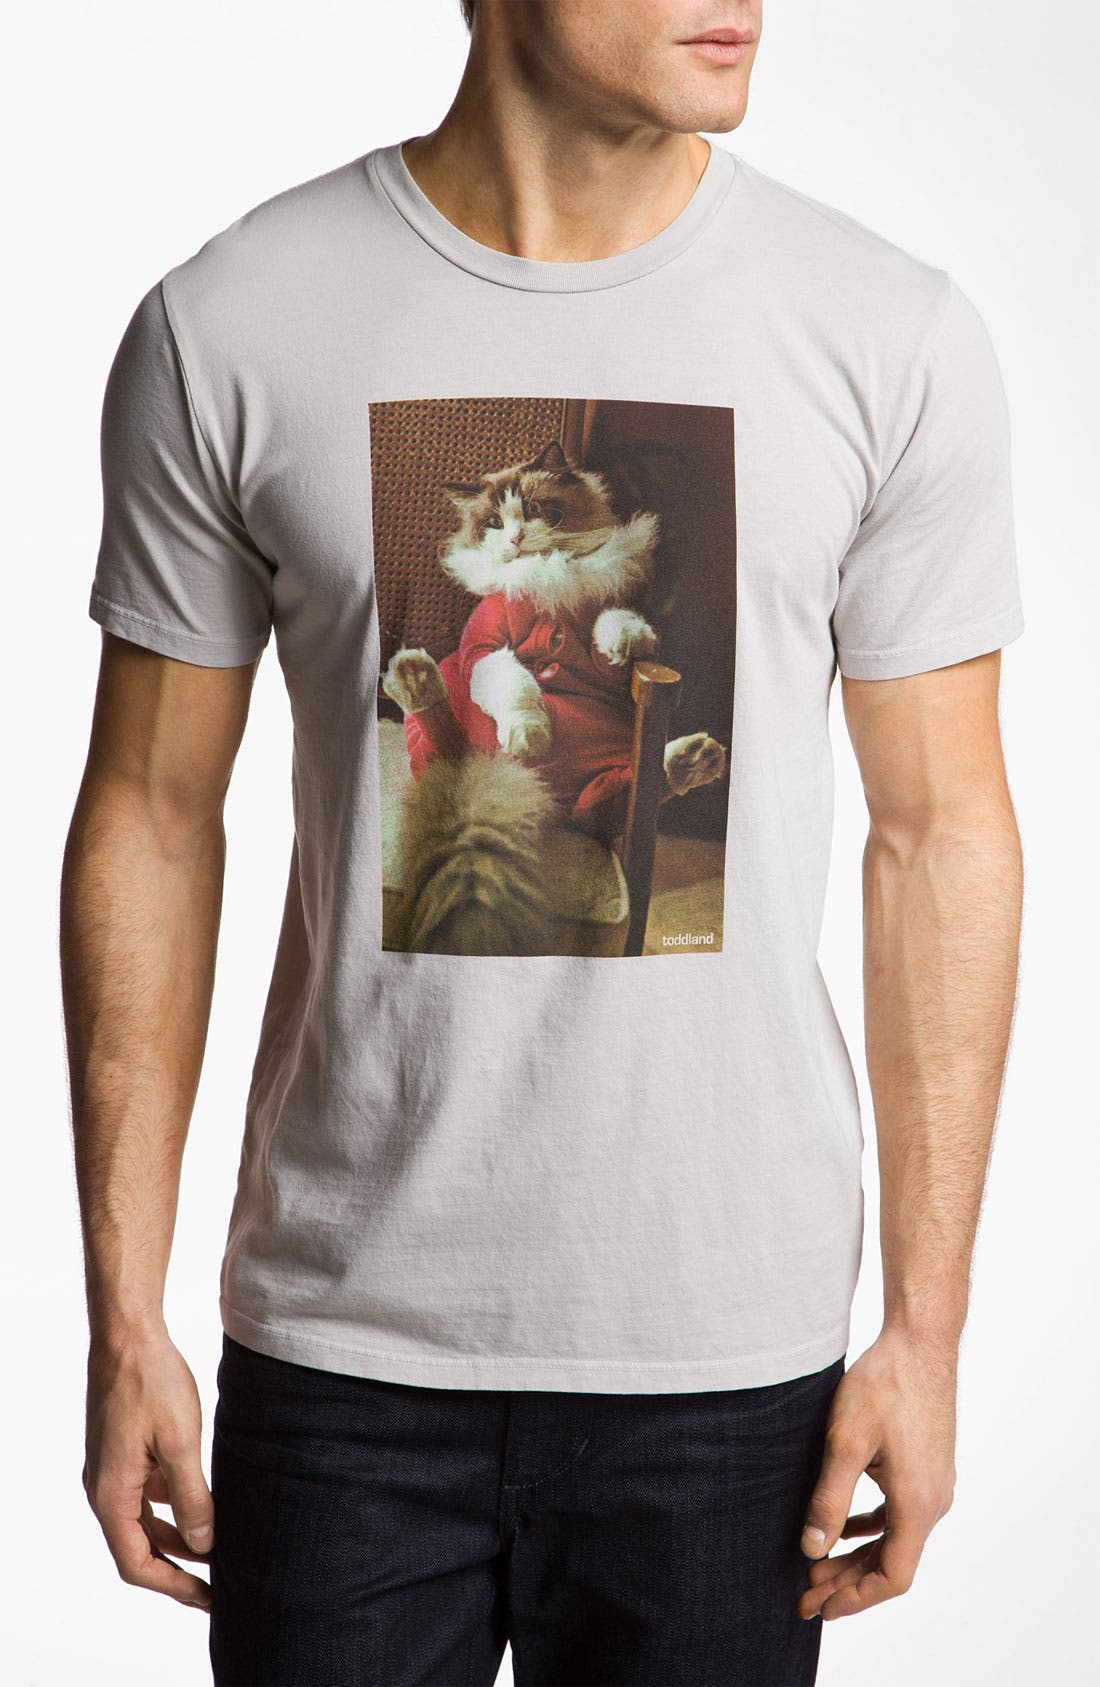 Main Image - Toddland 'Dino's Union Suit' T-Shirt